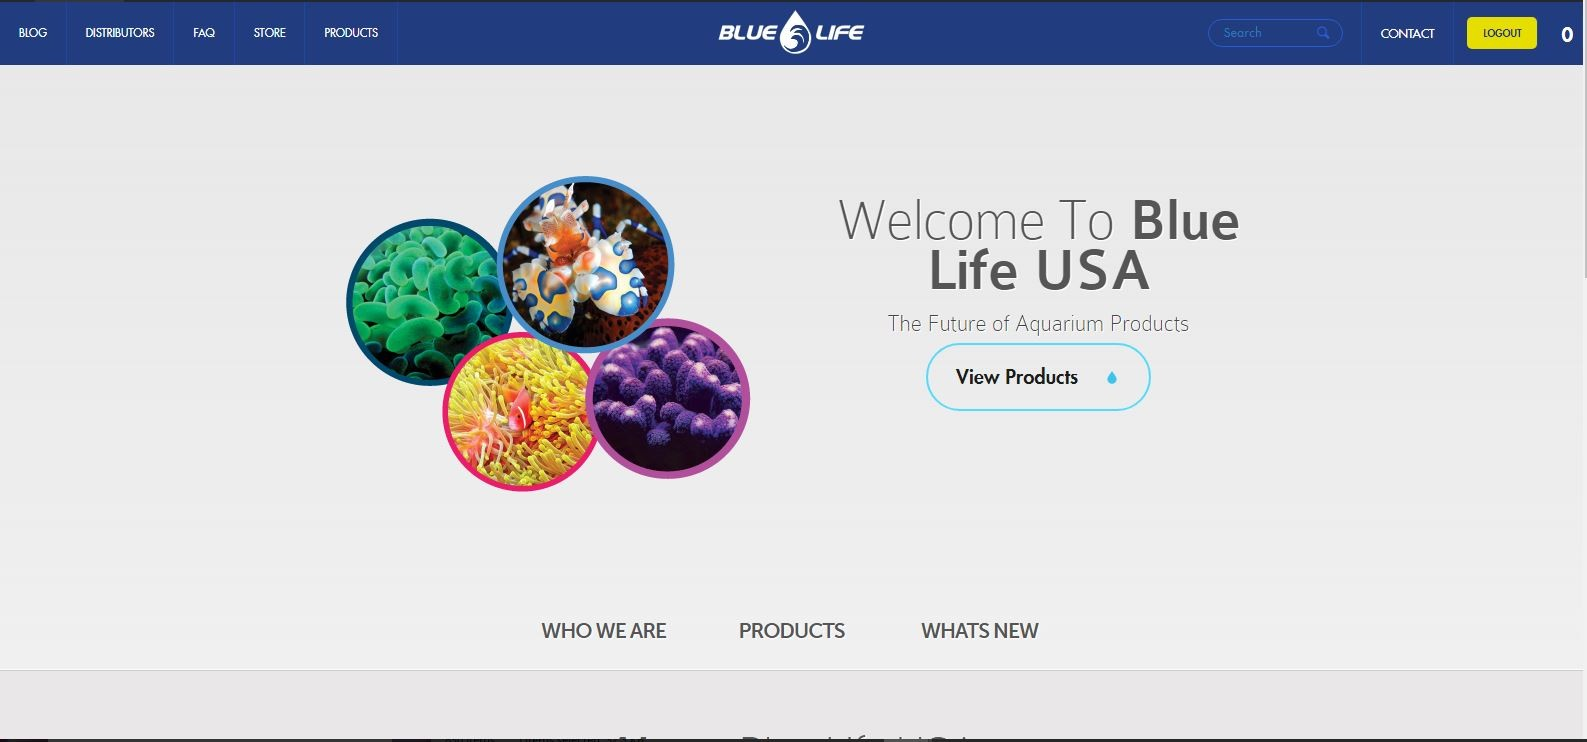 bluelifeusa.com wholesale aquarium products distributor